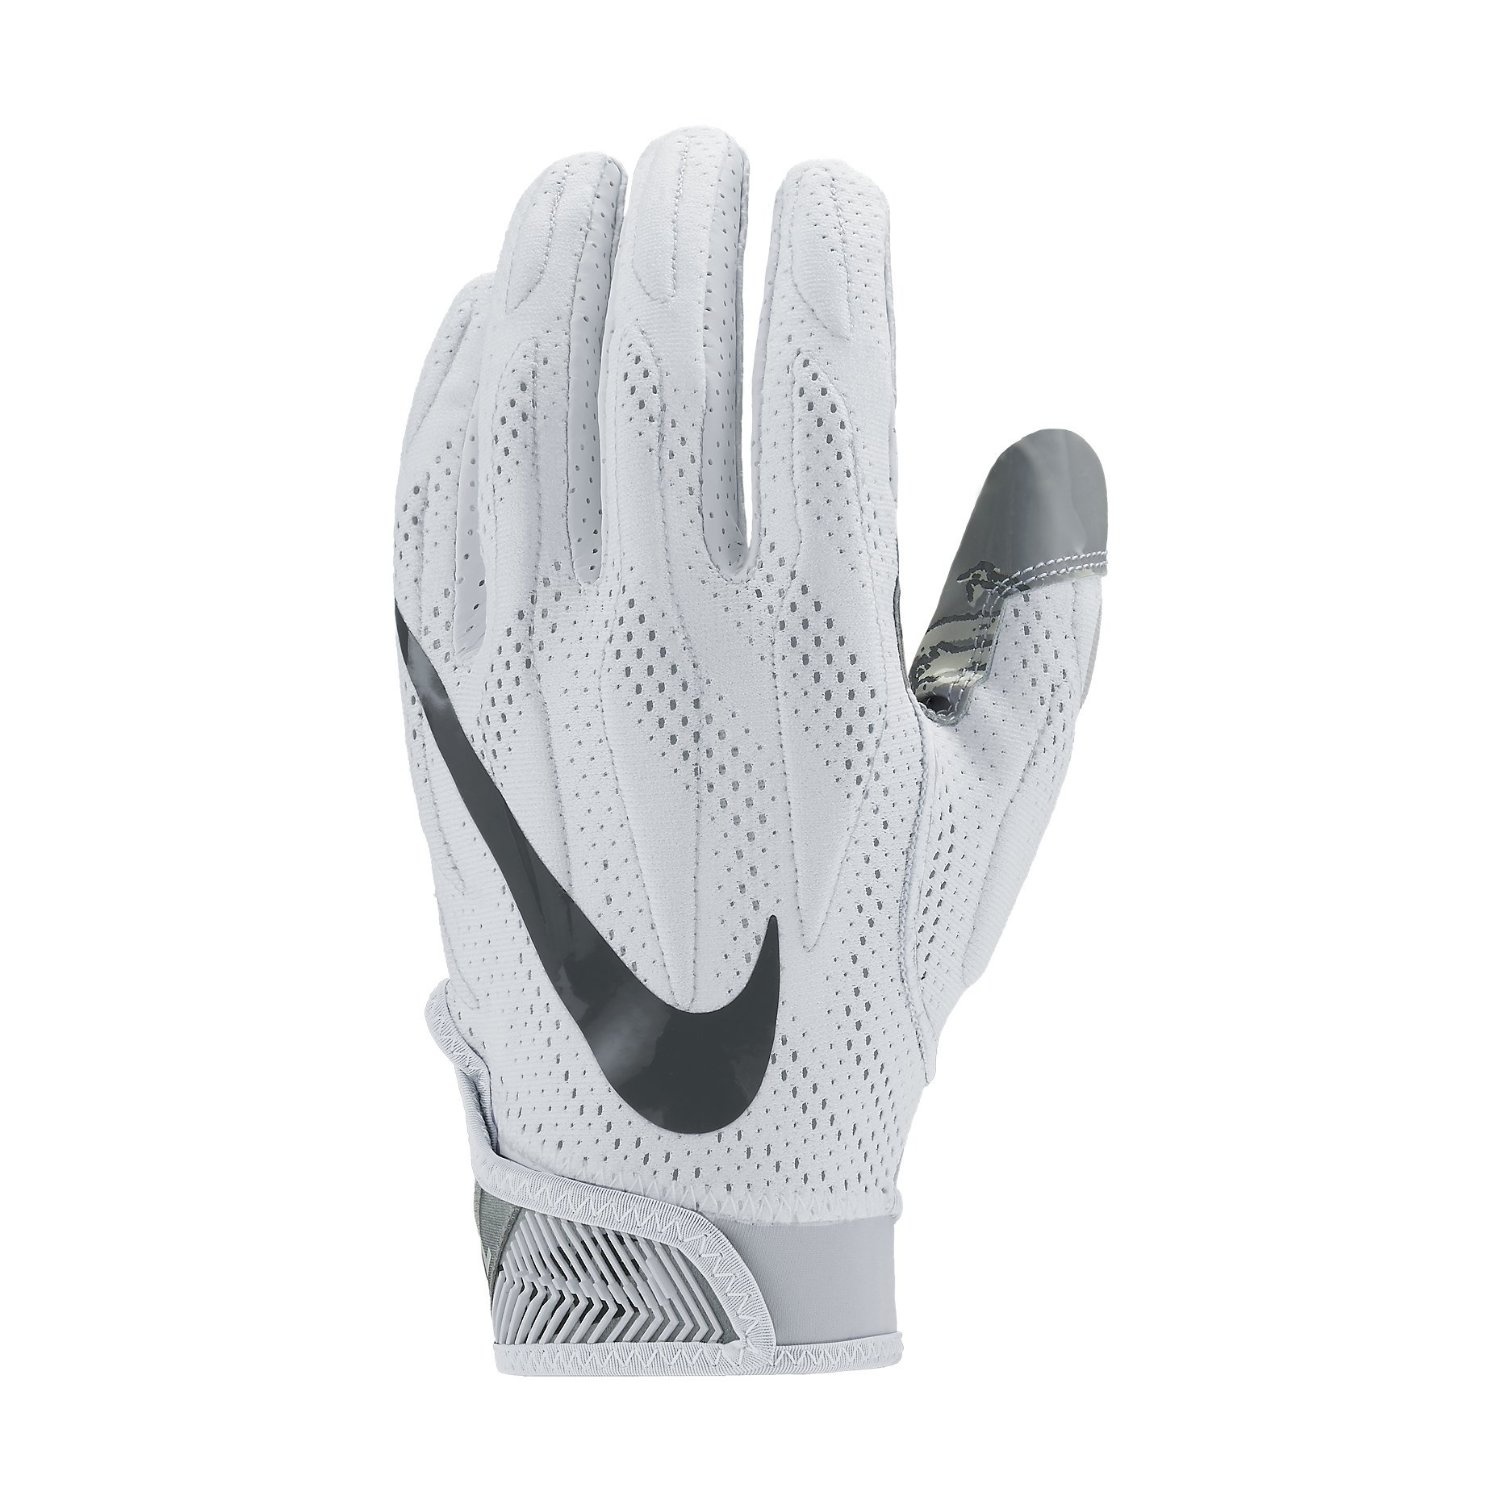 online store a1ef2 a5588 Get Quotations · Nike Men s Superbad 4 Football Gloves White Black Grey  GF0494 101 Size Large